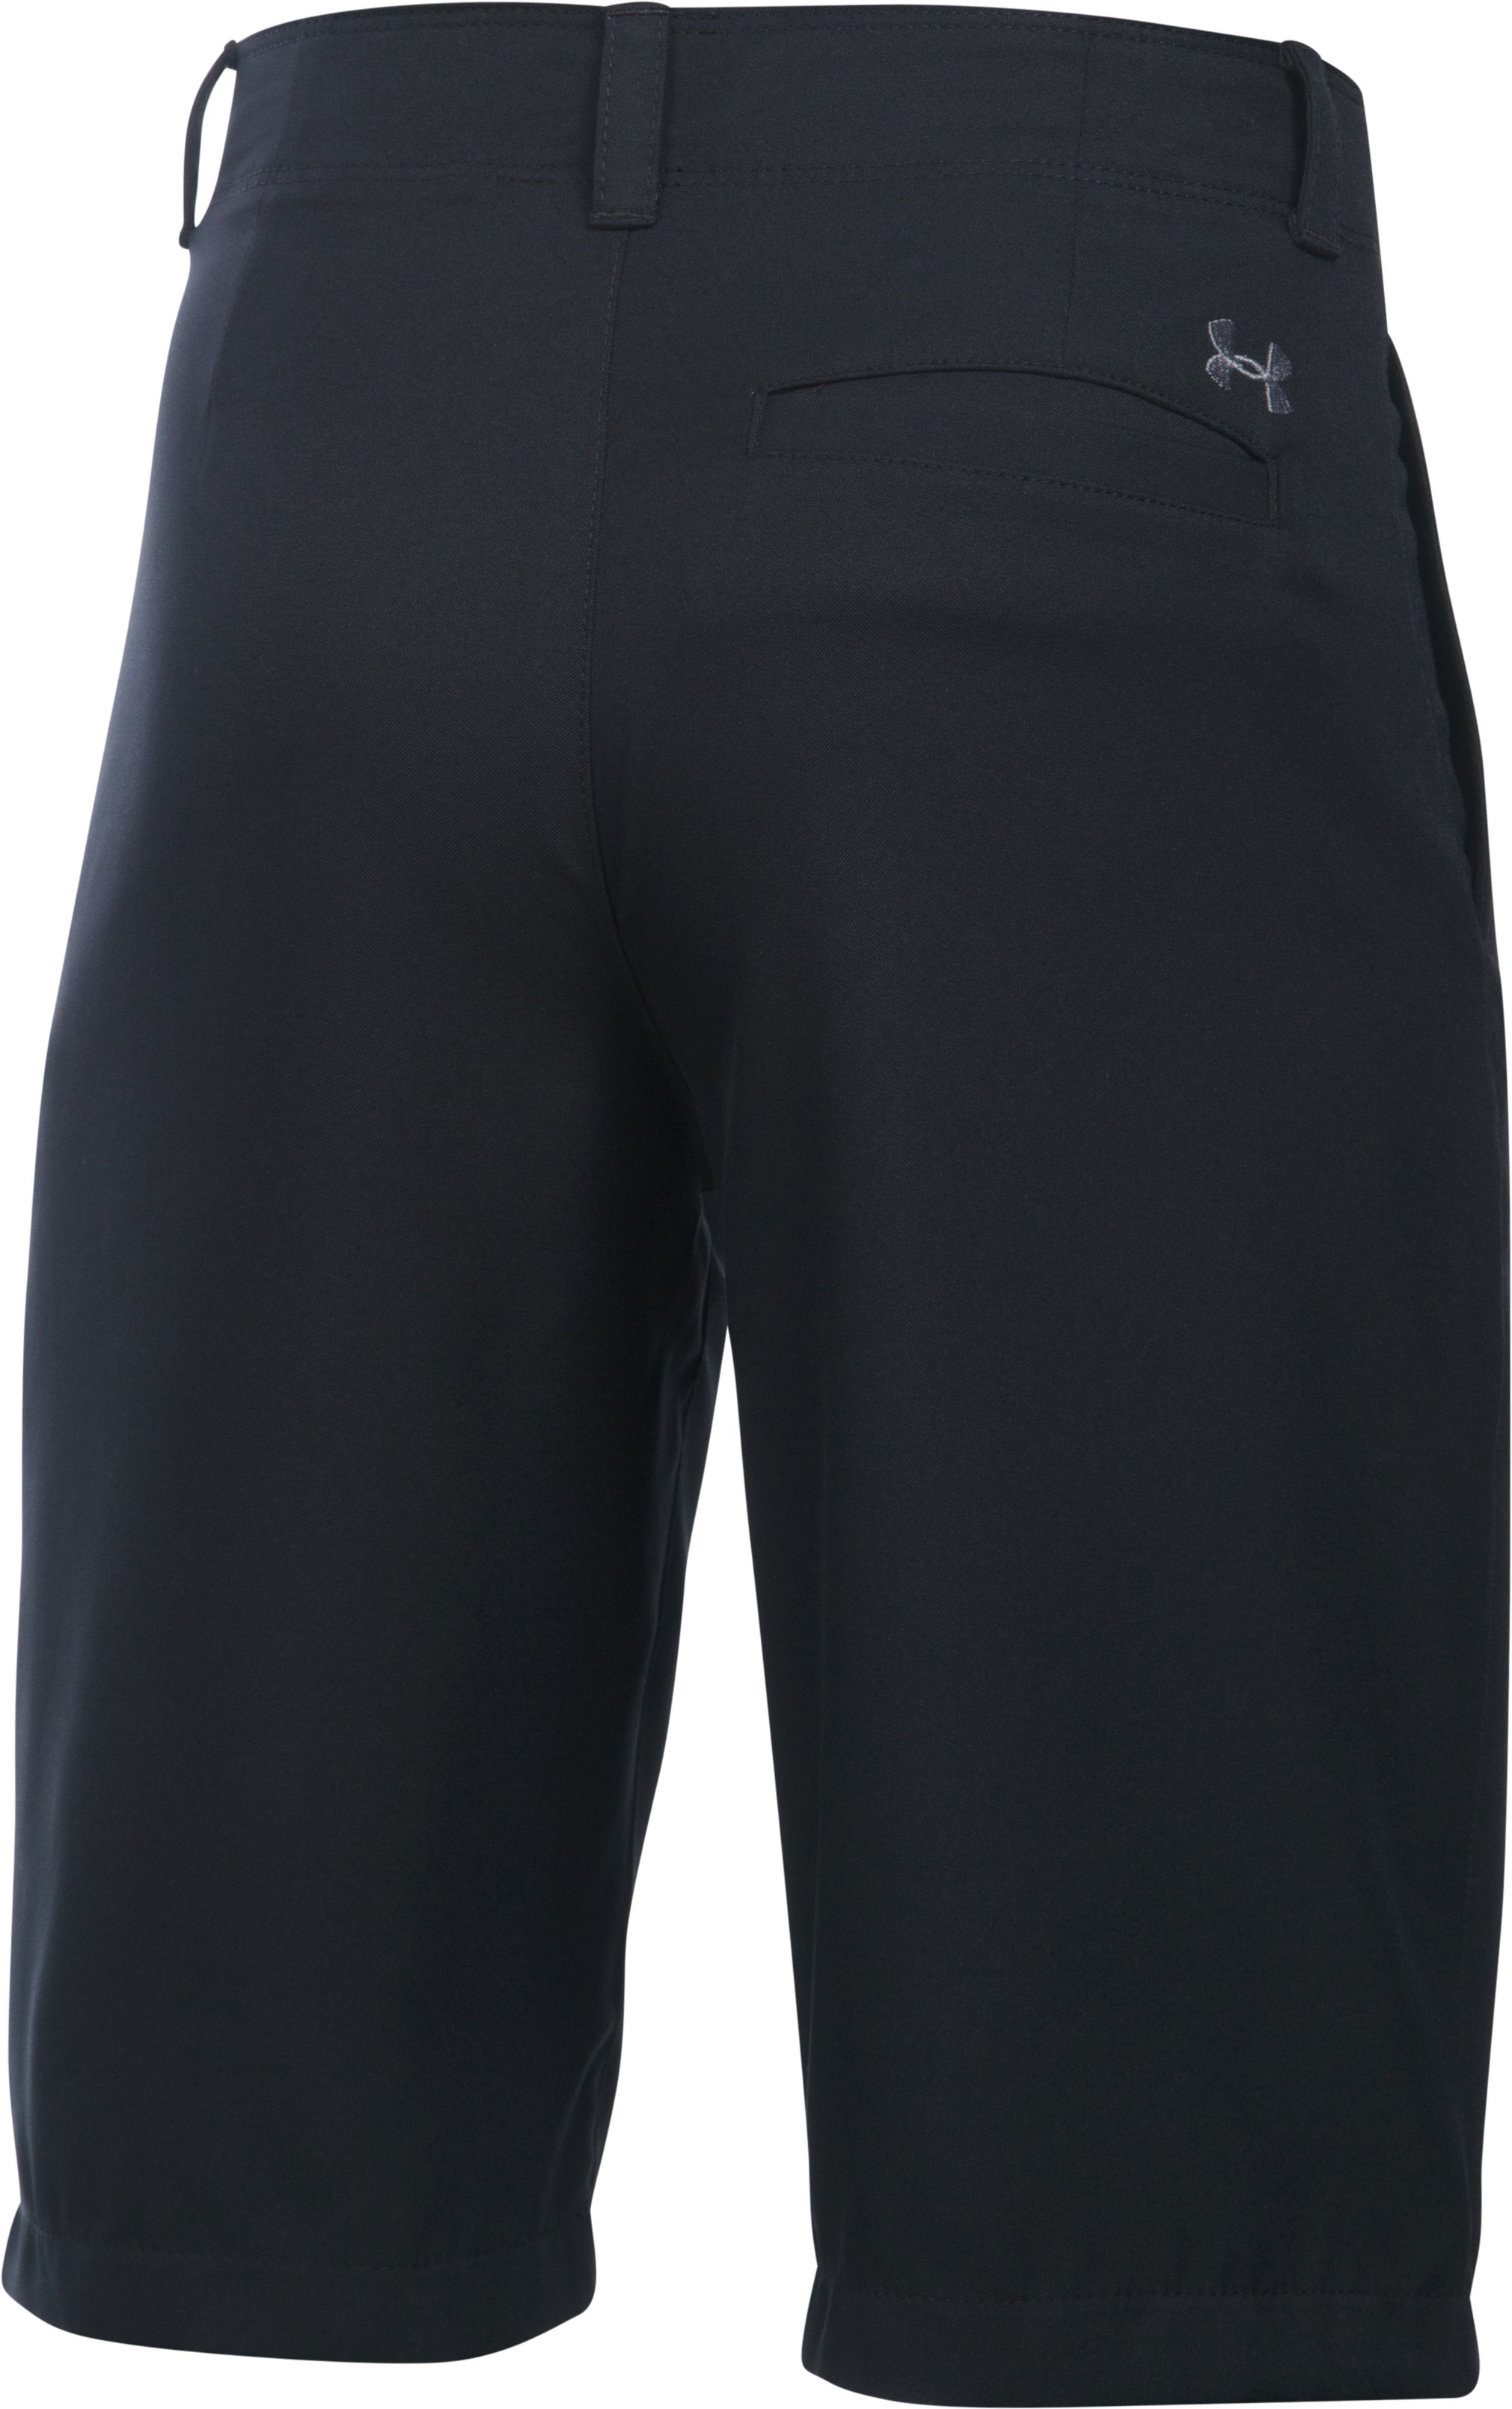 Boys' UA Medal Play Golf Shorts , Black ,